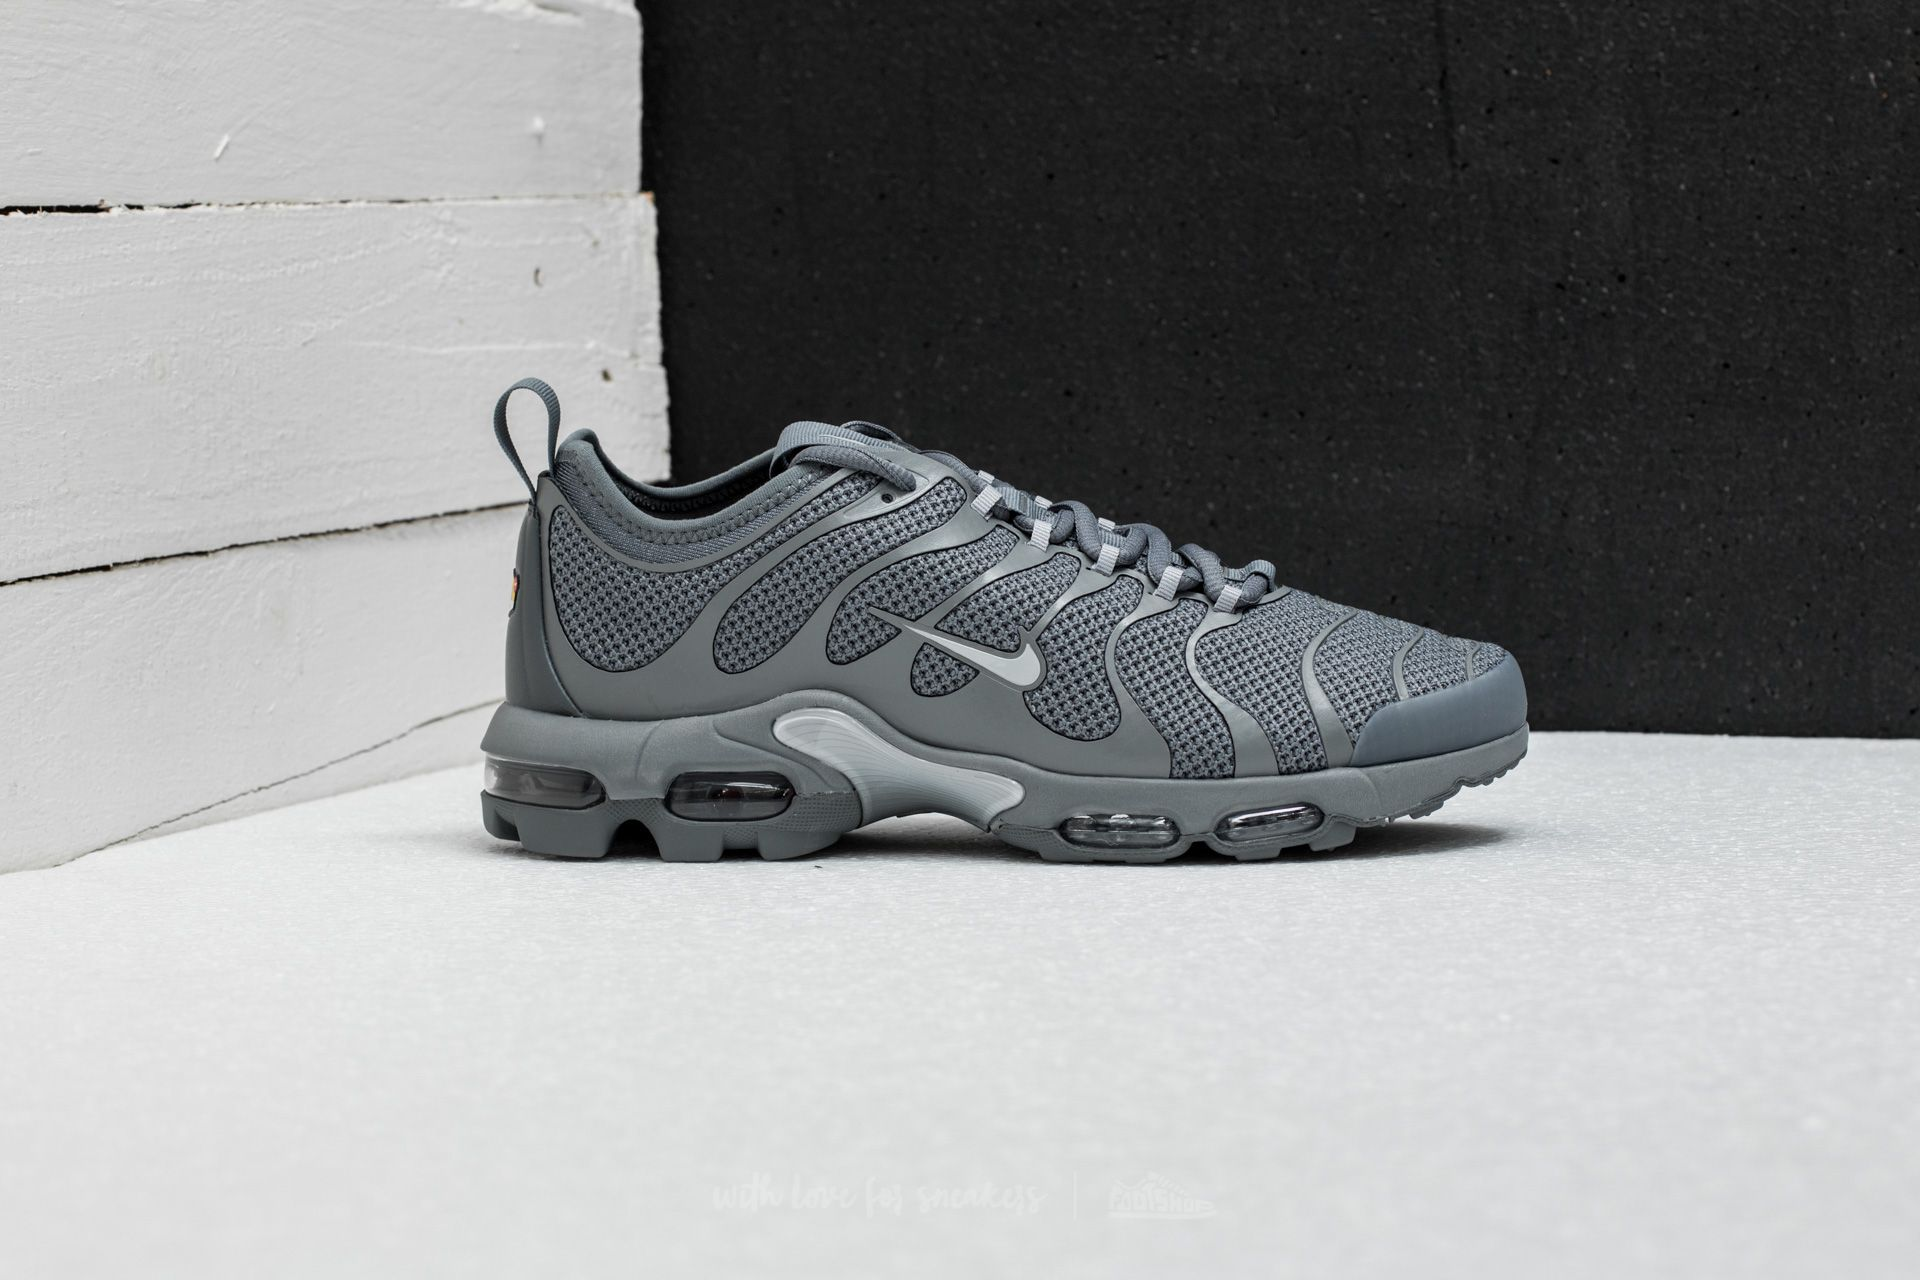 Nike Air Max Plus TN Ultra Cool Grey  Wolf Grey-Cool Grey at a fb9406f8a